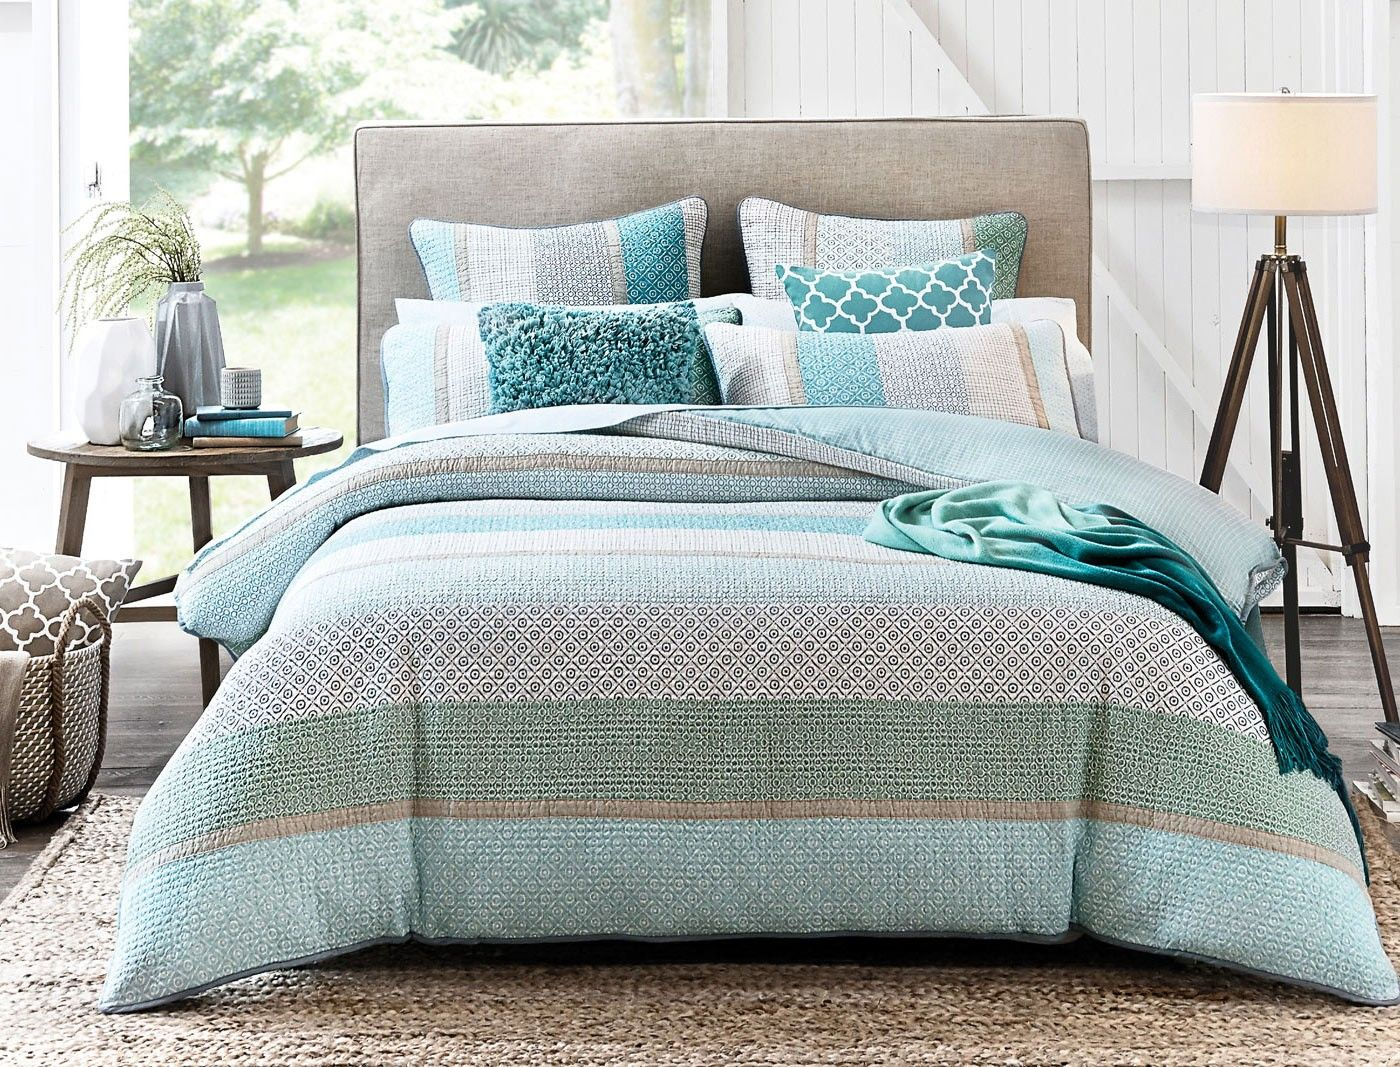 Bed Bath N' Table | 床品 | Pinterest | Quilt cover, Bedrooms and ... : quilt cover sets - Adamdwight.com